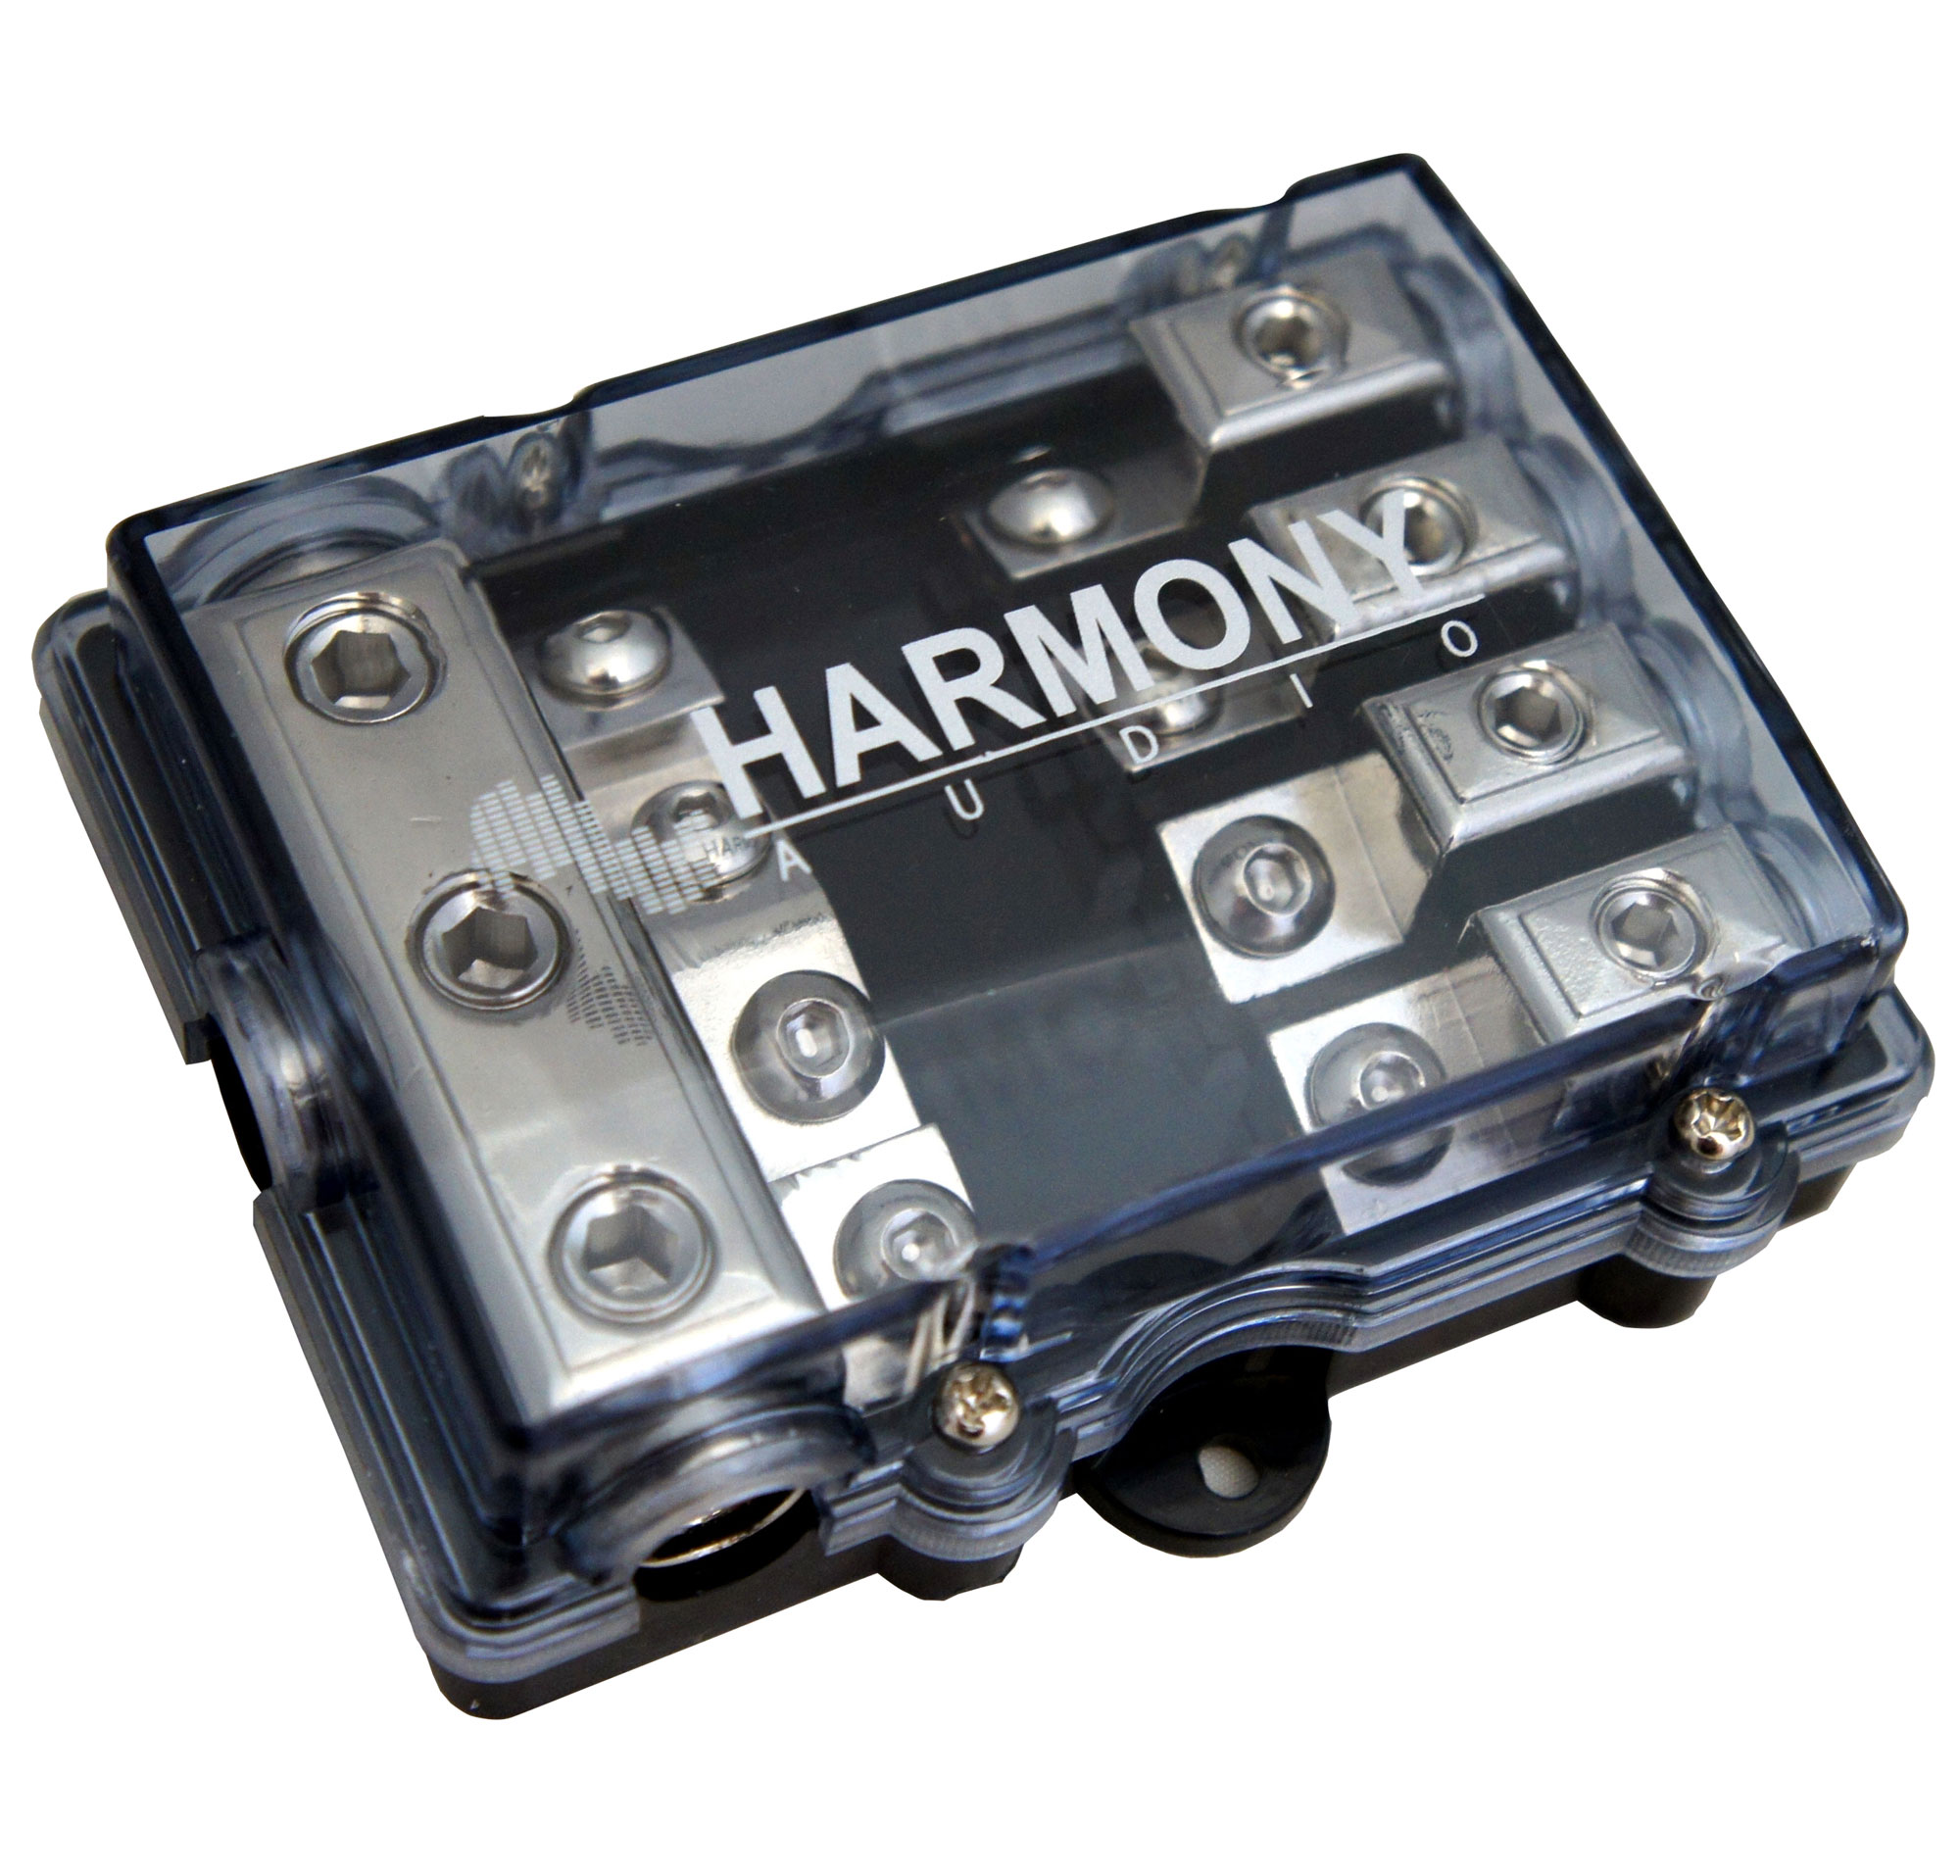 Harmony Audio HA-MIDIFD4 Car Stereo 4-Way Mini ANL MIDI Fused Distribution Block (3) 4GA IN - (4) 8GA OUT